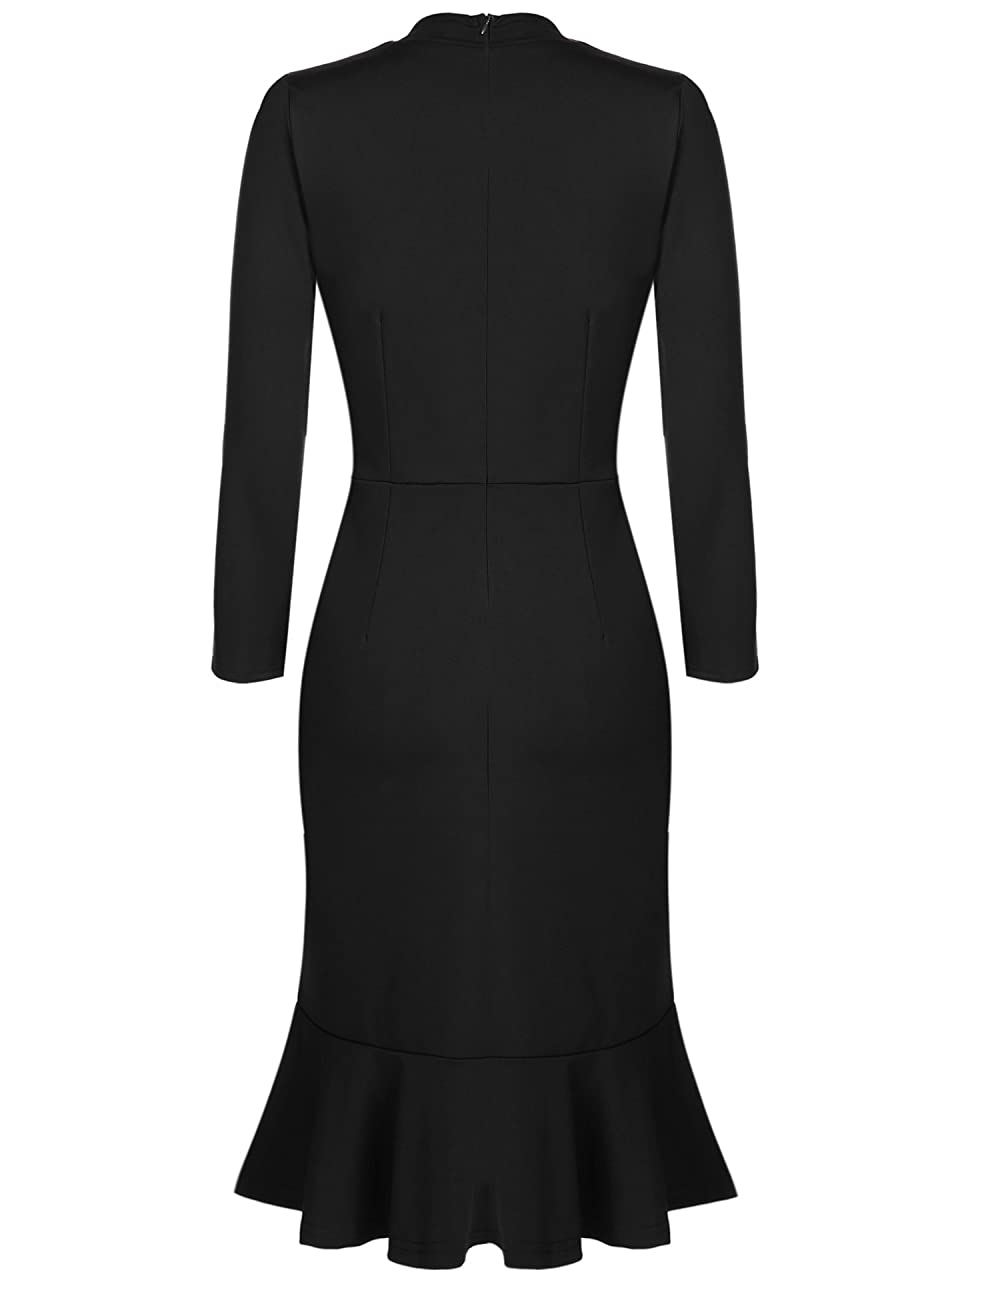 ACEVOG Women's Vintage 50s Elegant Bodycon Formal Casual Party Pencil Dress 1